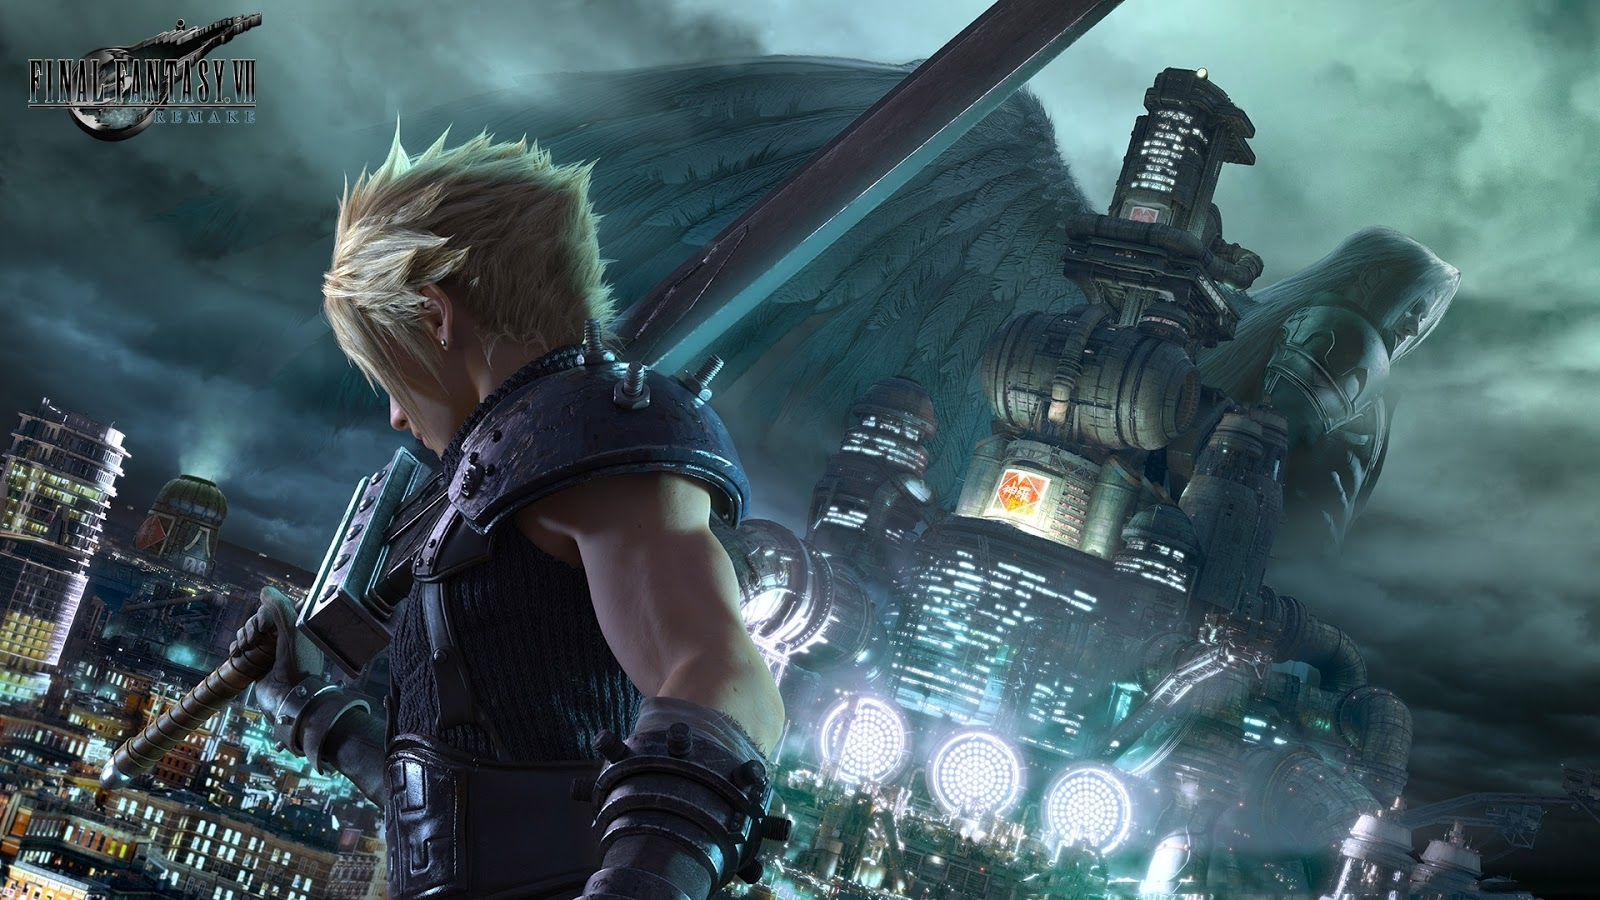 final fantasy vii remake hd wallpaper | manga council